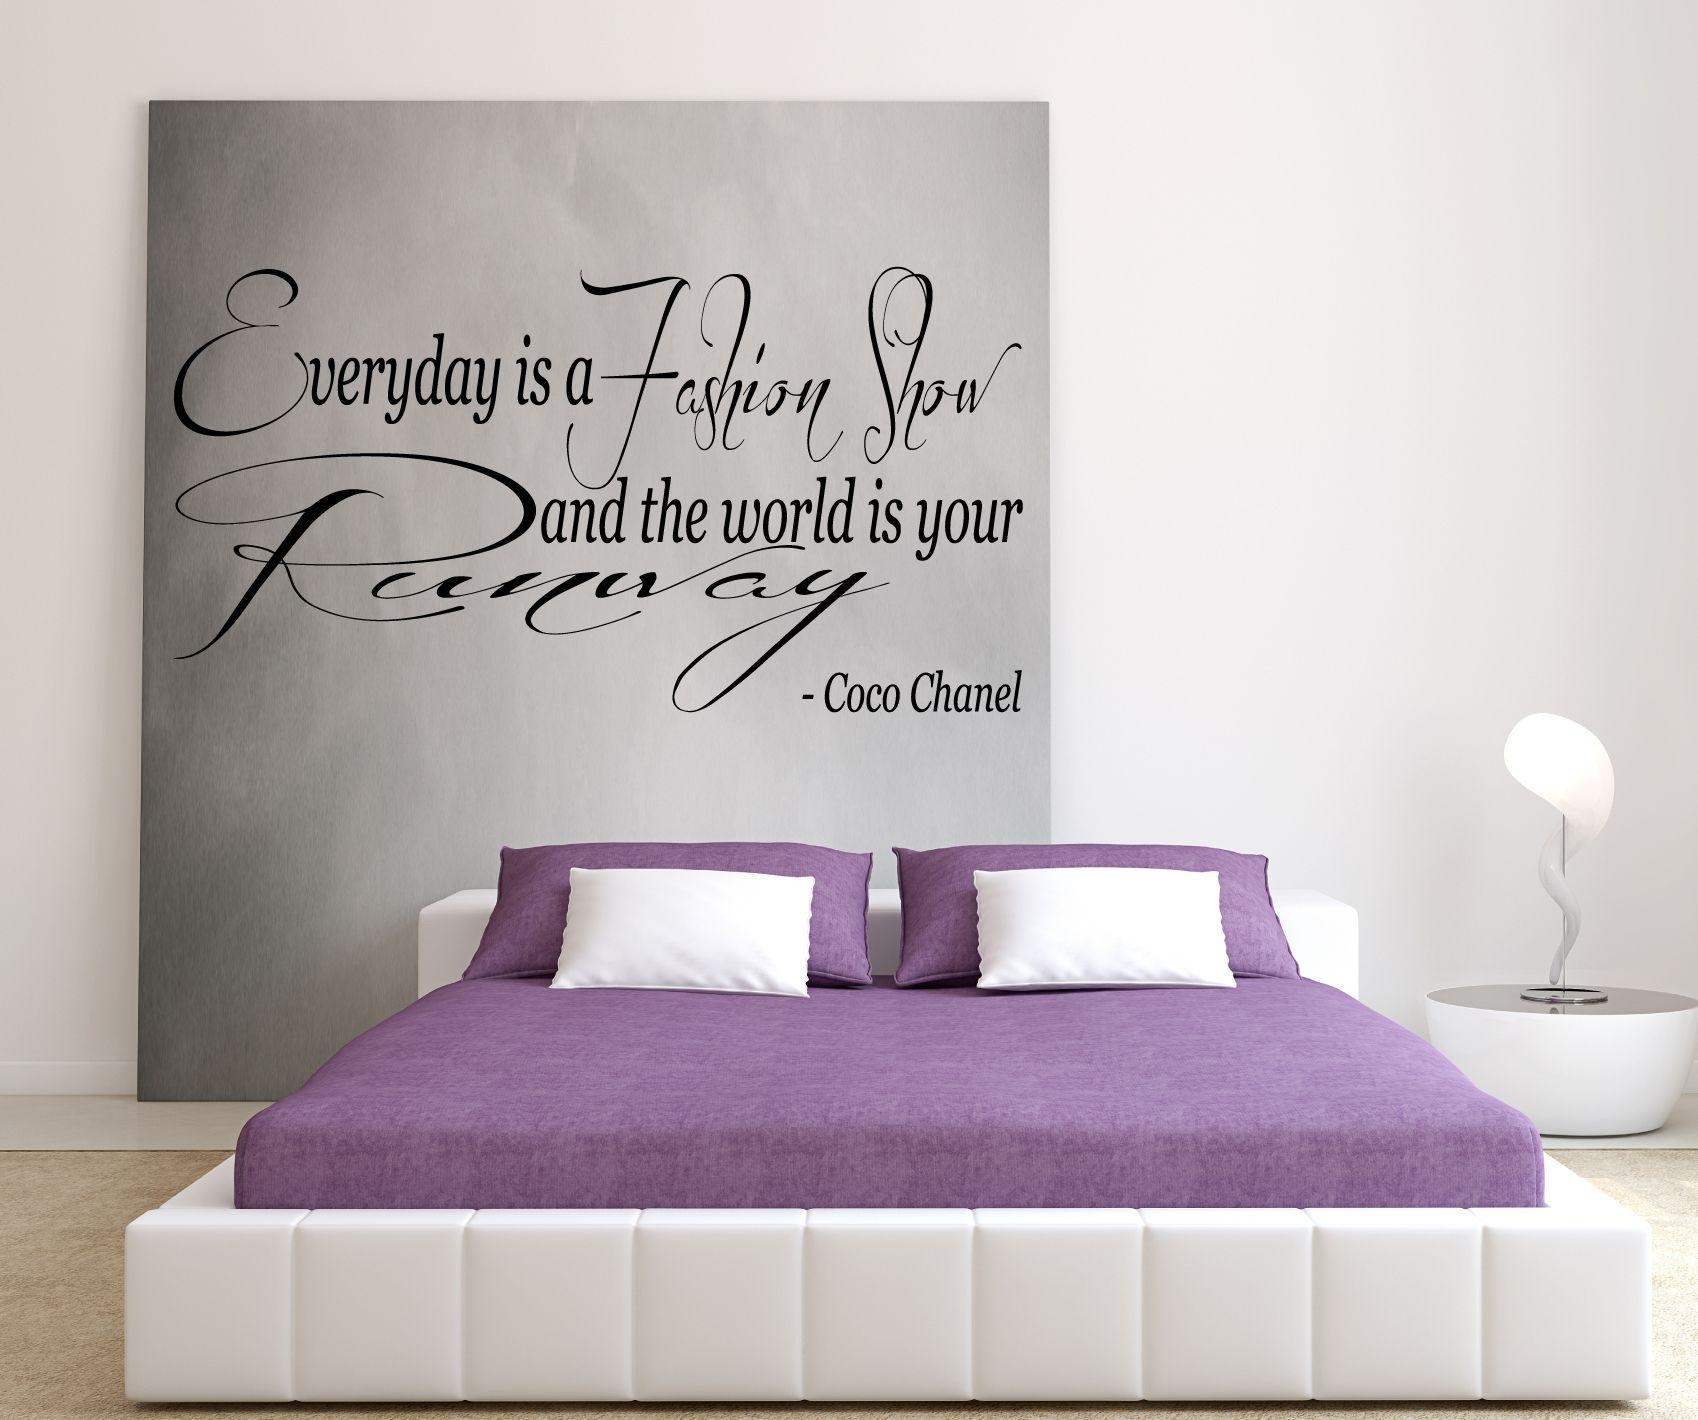 Coco Chanel – Everyday Is A Fashion Show And The World Is Your Throughout Coco Chanel Wall Decals (Image 7 of 20)